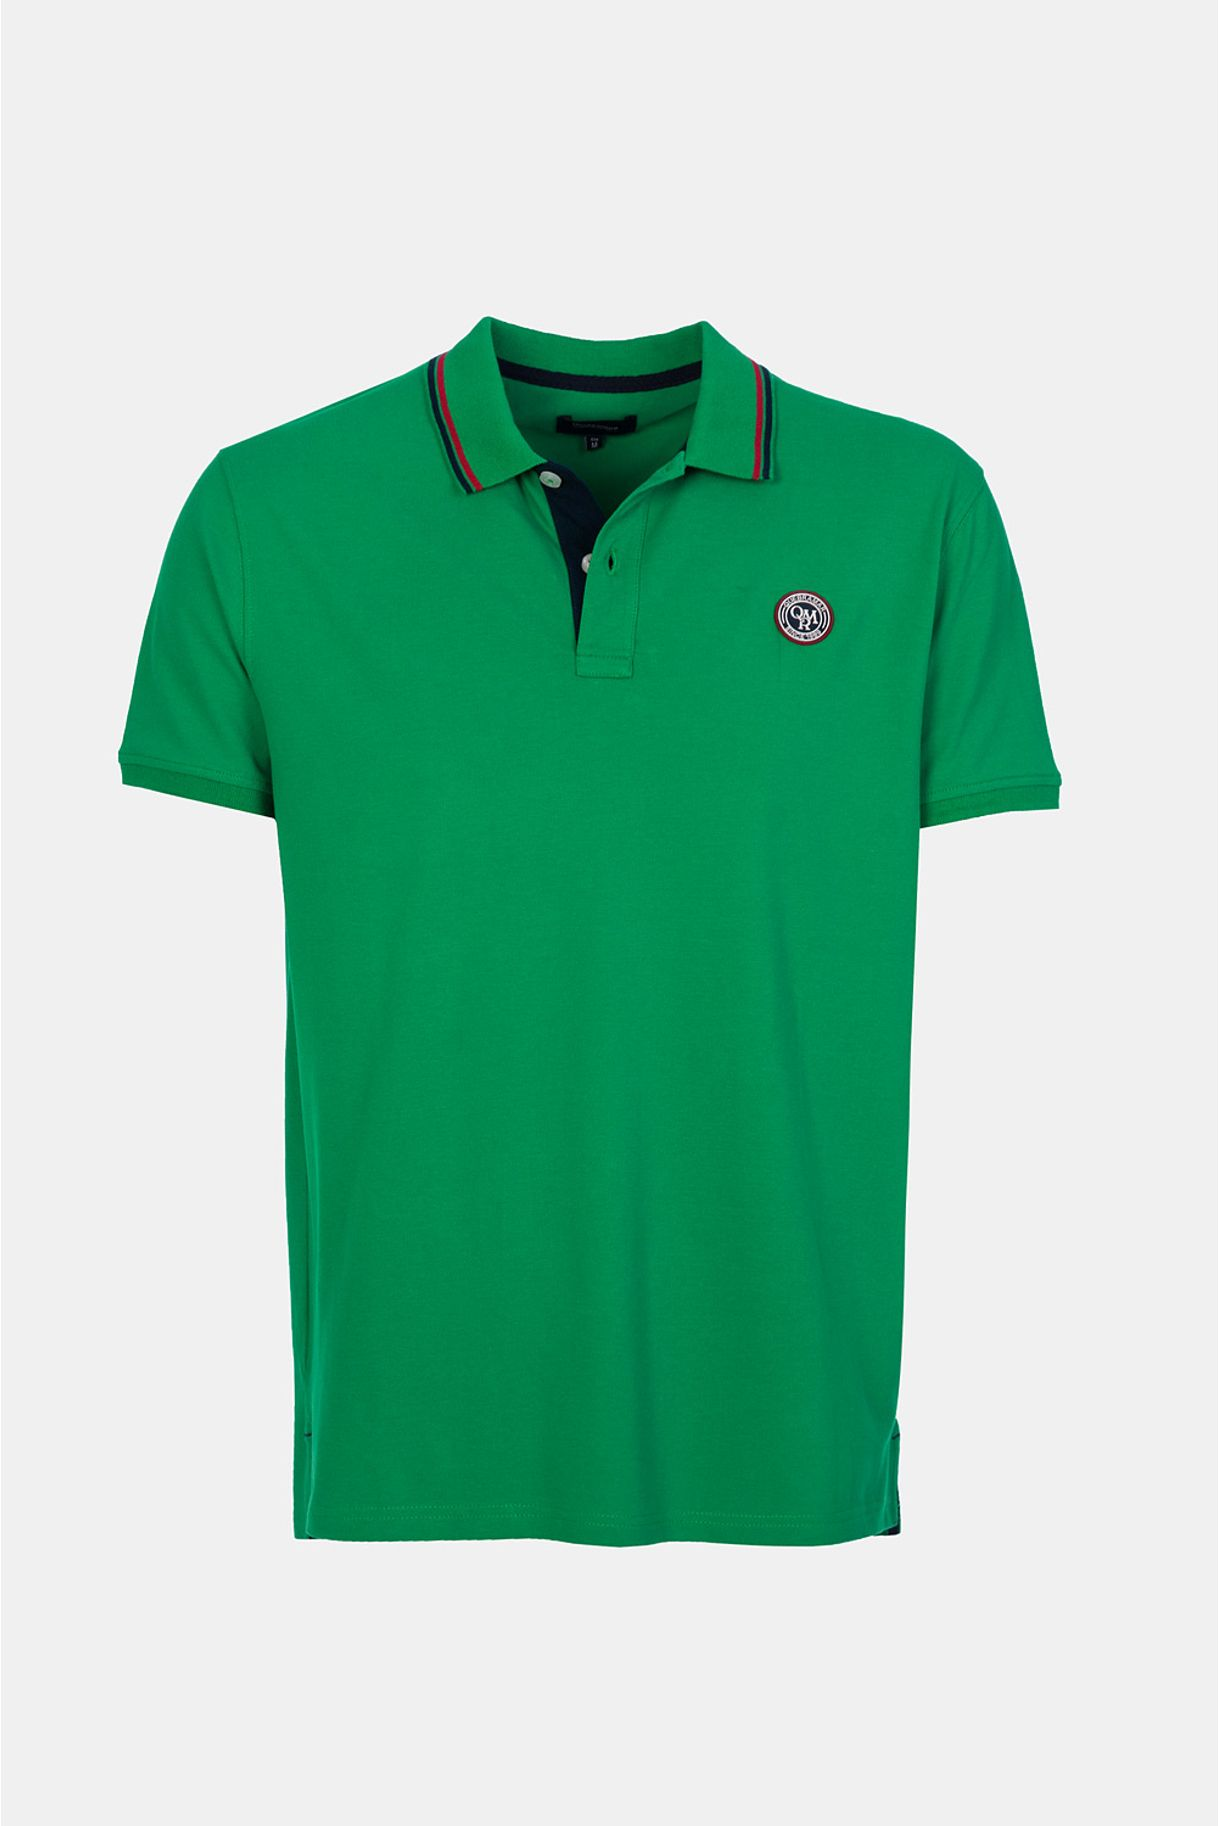 POLO WITH 100% COTTON APPLICATION